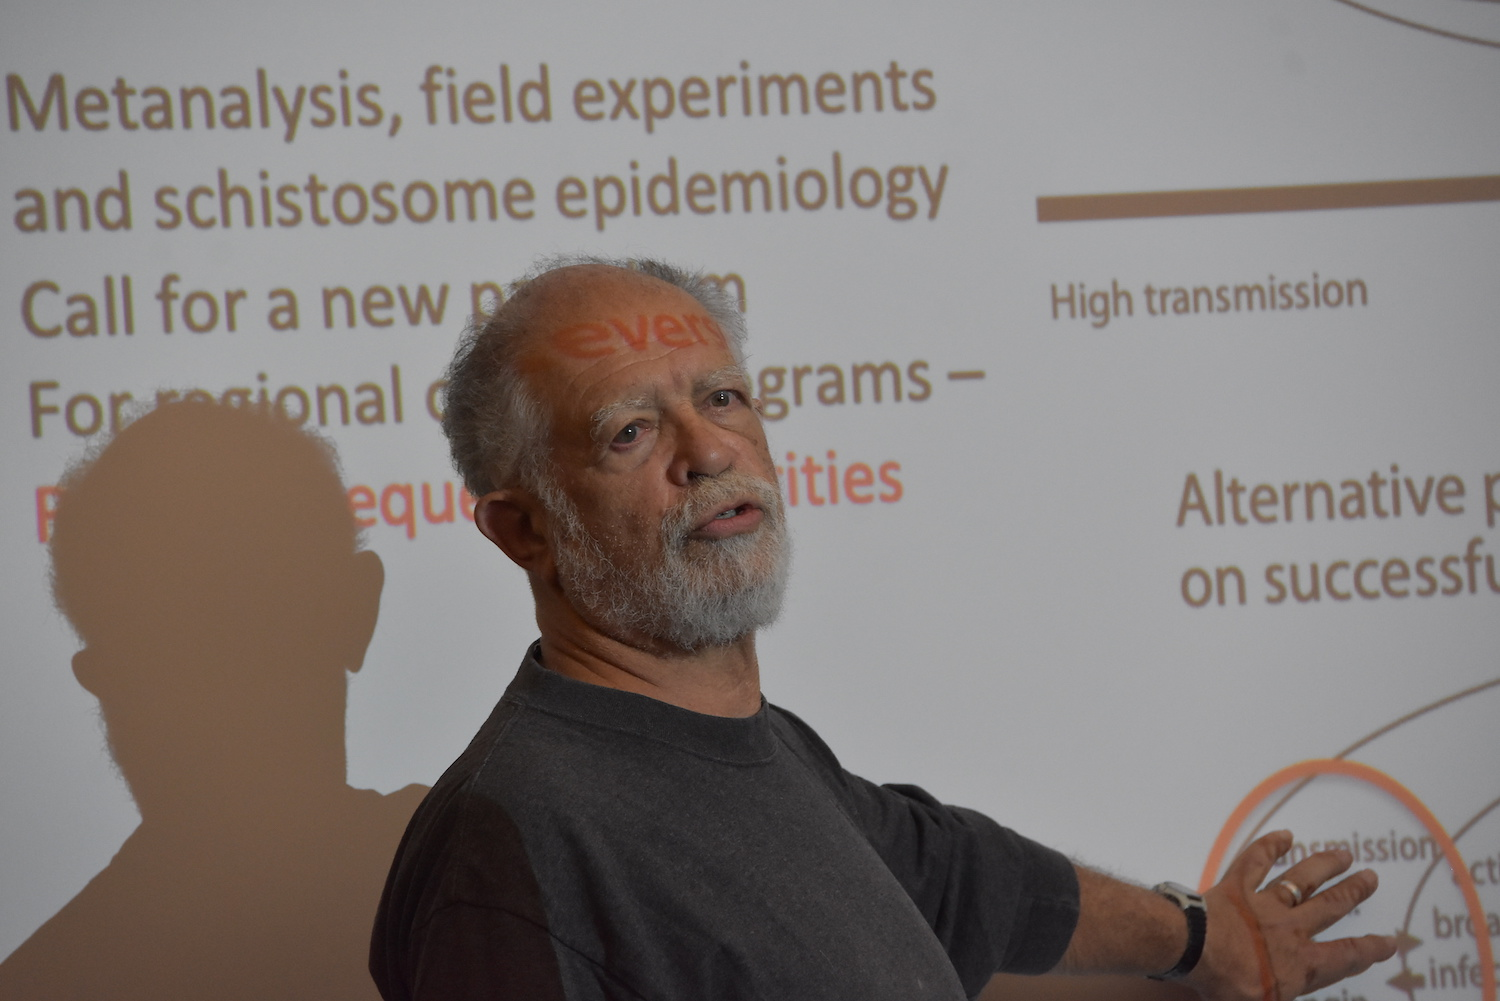 Dr. Armand Kuris, speaking at the College of the Environment at Wesleyan University on December 3, 2018. Photo by Laurie Kenney.